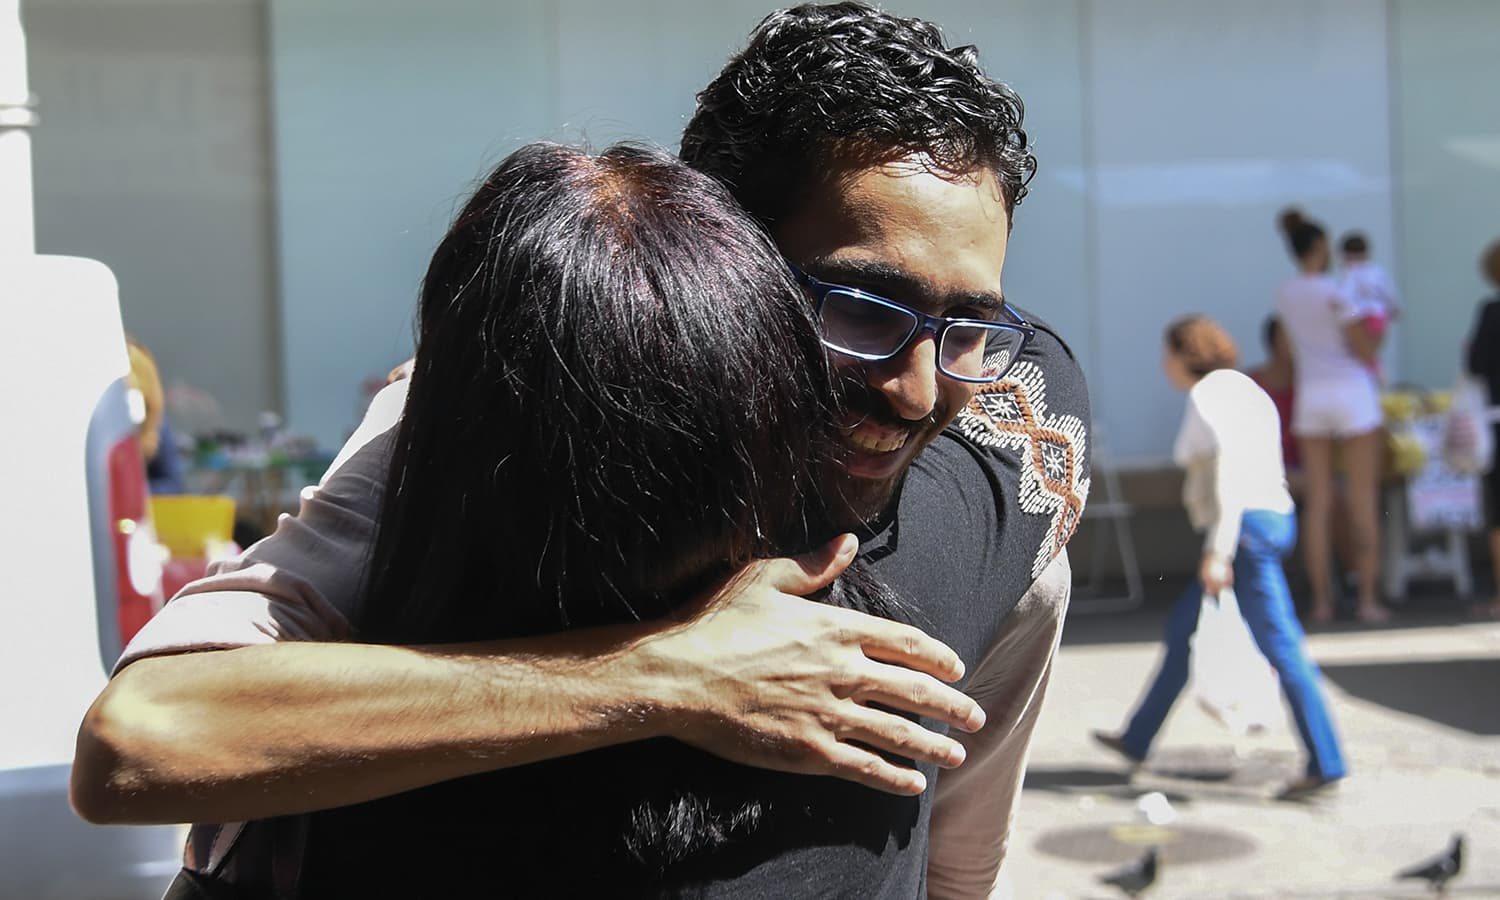 """Egyptian immigrant Mohamed Ali Abdelmoatty Kenawy, who was attacked three weeks ago by four men screaming """"Go back to your country!"""", hugs a customer at his food stand in the Copacabana neighbourhood in Rio de Janeiro on August 24.— AFP"""